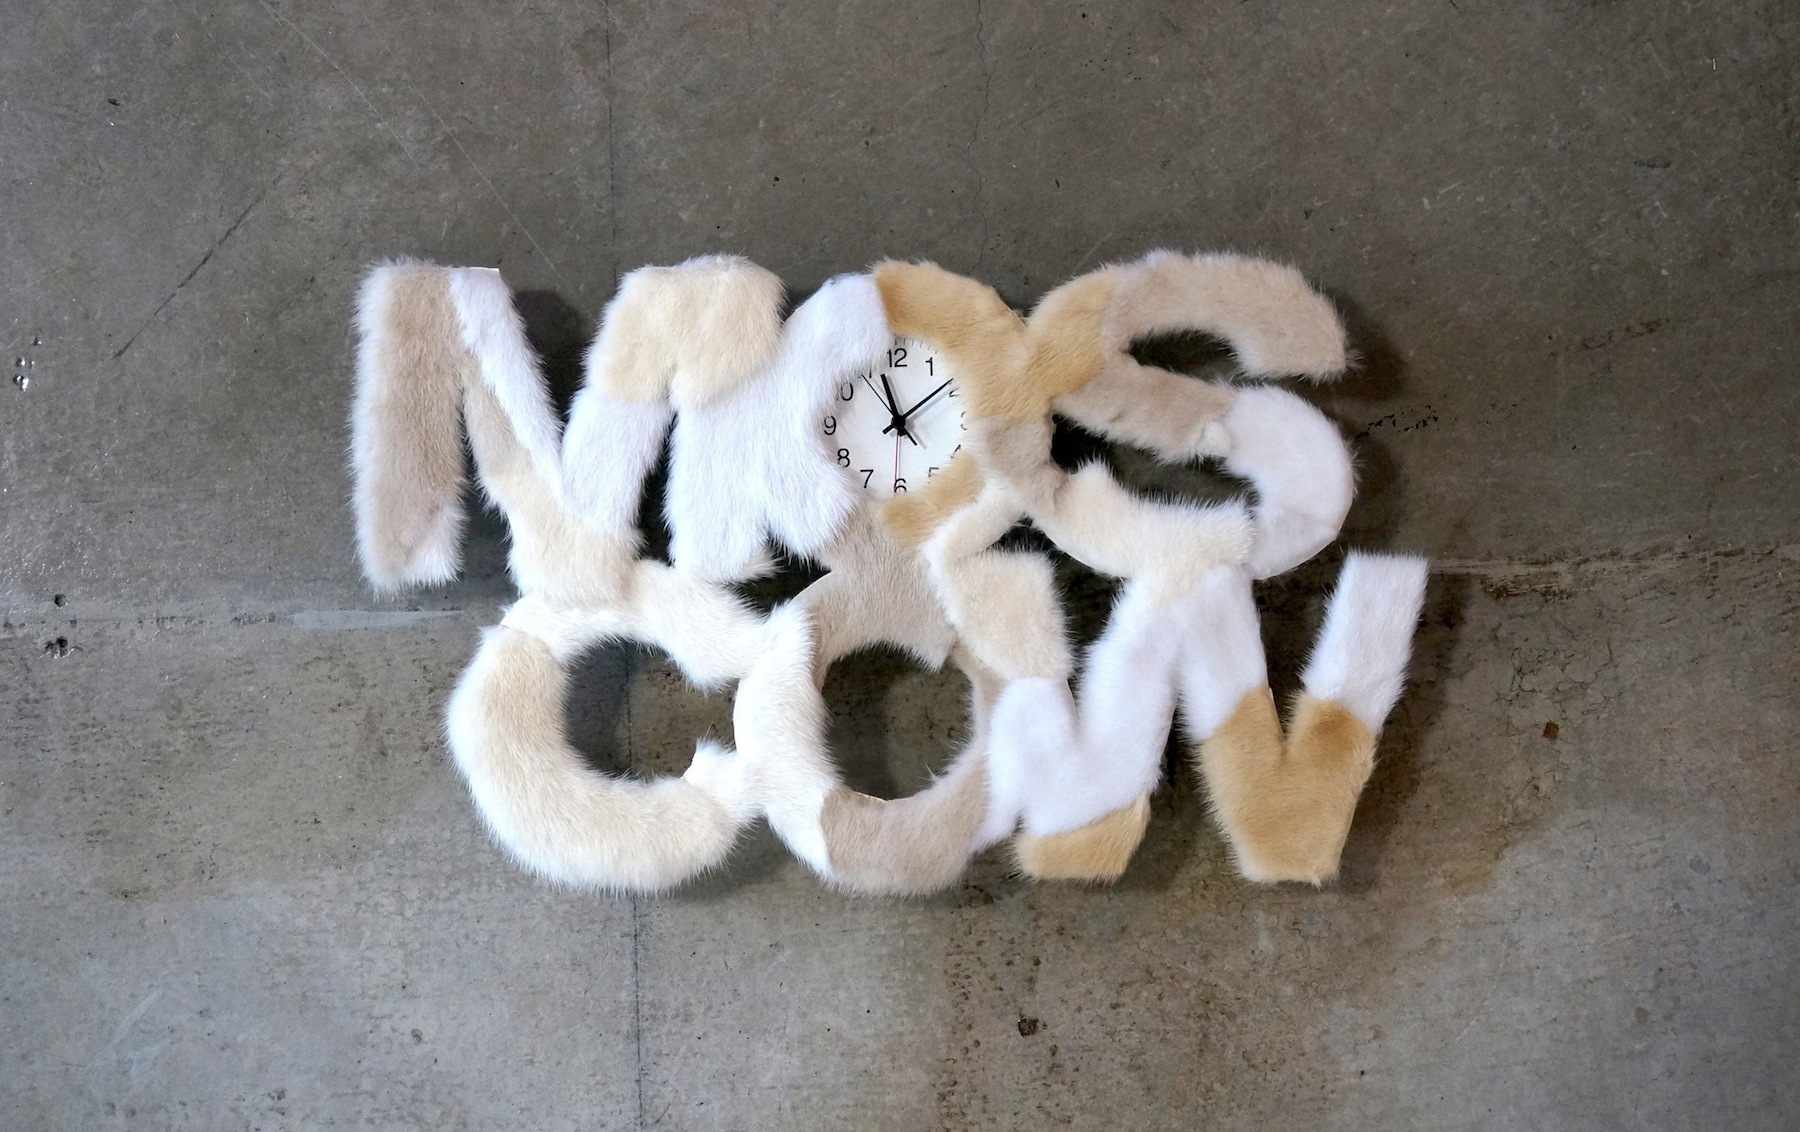 """Product """"Moscow"""" - Clock with recycled mink decoration. Designed by Masaki Kato / PUDDLE INC."""